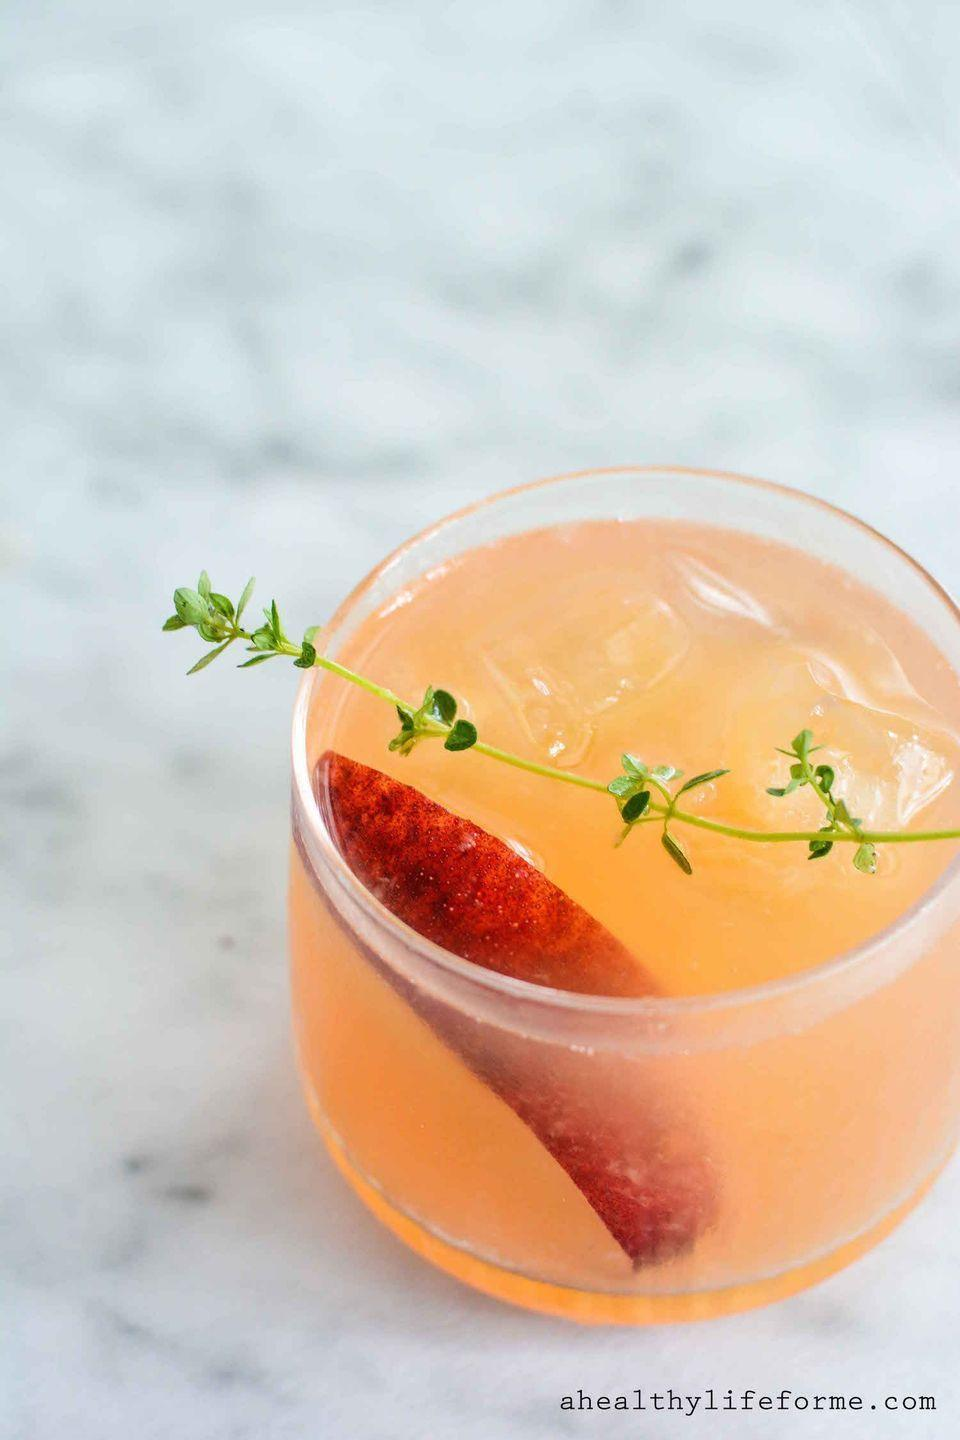 "<p>The most delicious way to get smashed.</p><p>Get the recipe from <a href=""http://ahealthylifeforme.com/peach-bourbon-thyme-smash/"" rel=""nofollow noopener"" target=""_blank"" data-ylk=""slk:A Healthy Life For Me"" class=""link rapid-noclick-resp"">A Healthy Life For Me</a>.</p>"